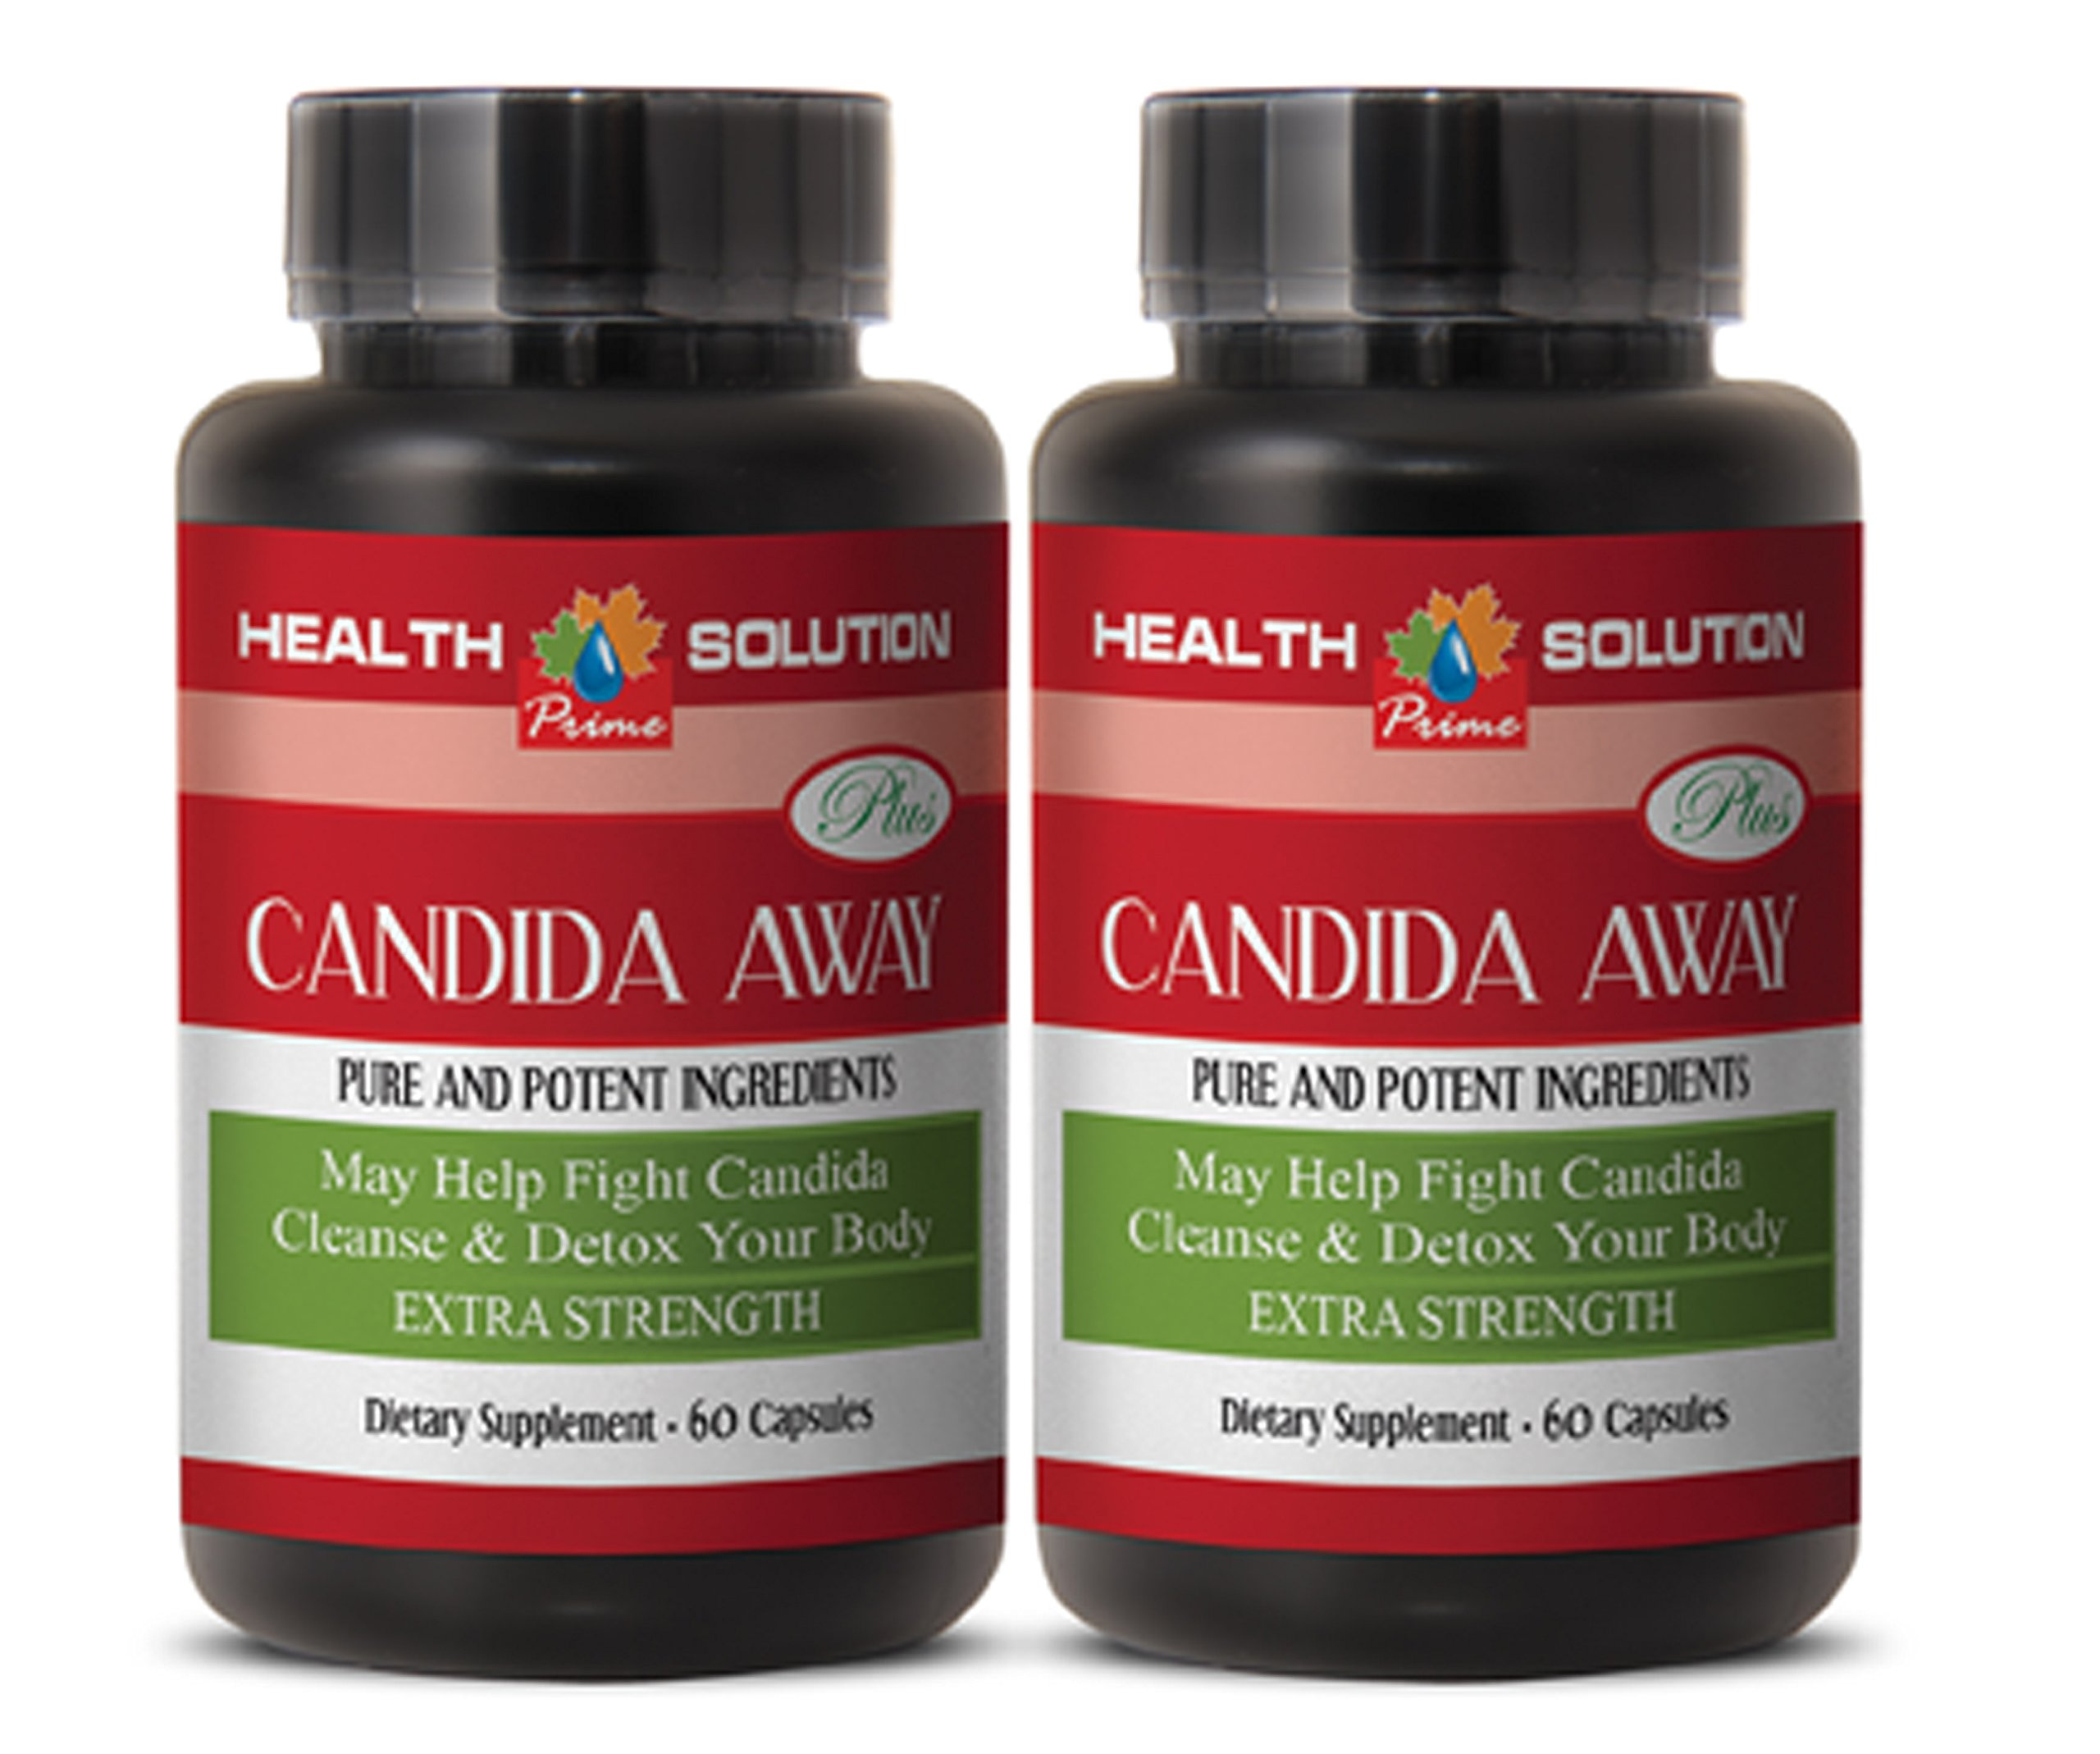 Yeast killing supplement - CANDIDA AWAY PLUS - Candida support - 2 Bottles 120 Capsules